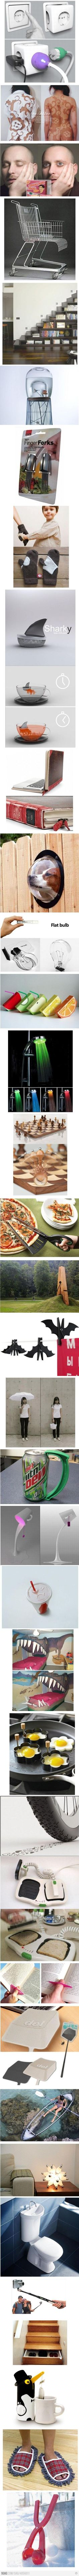 some of the coolest inventions ive ever seen